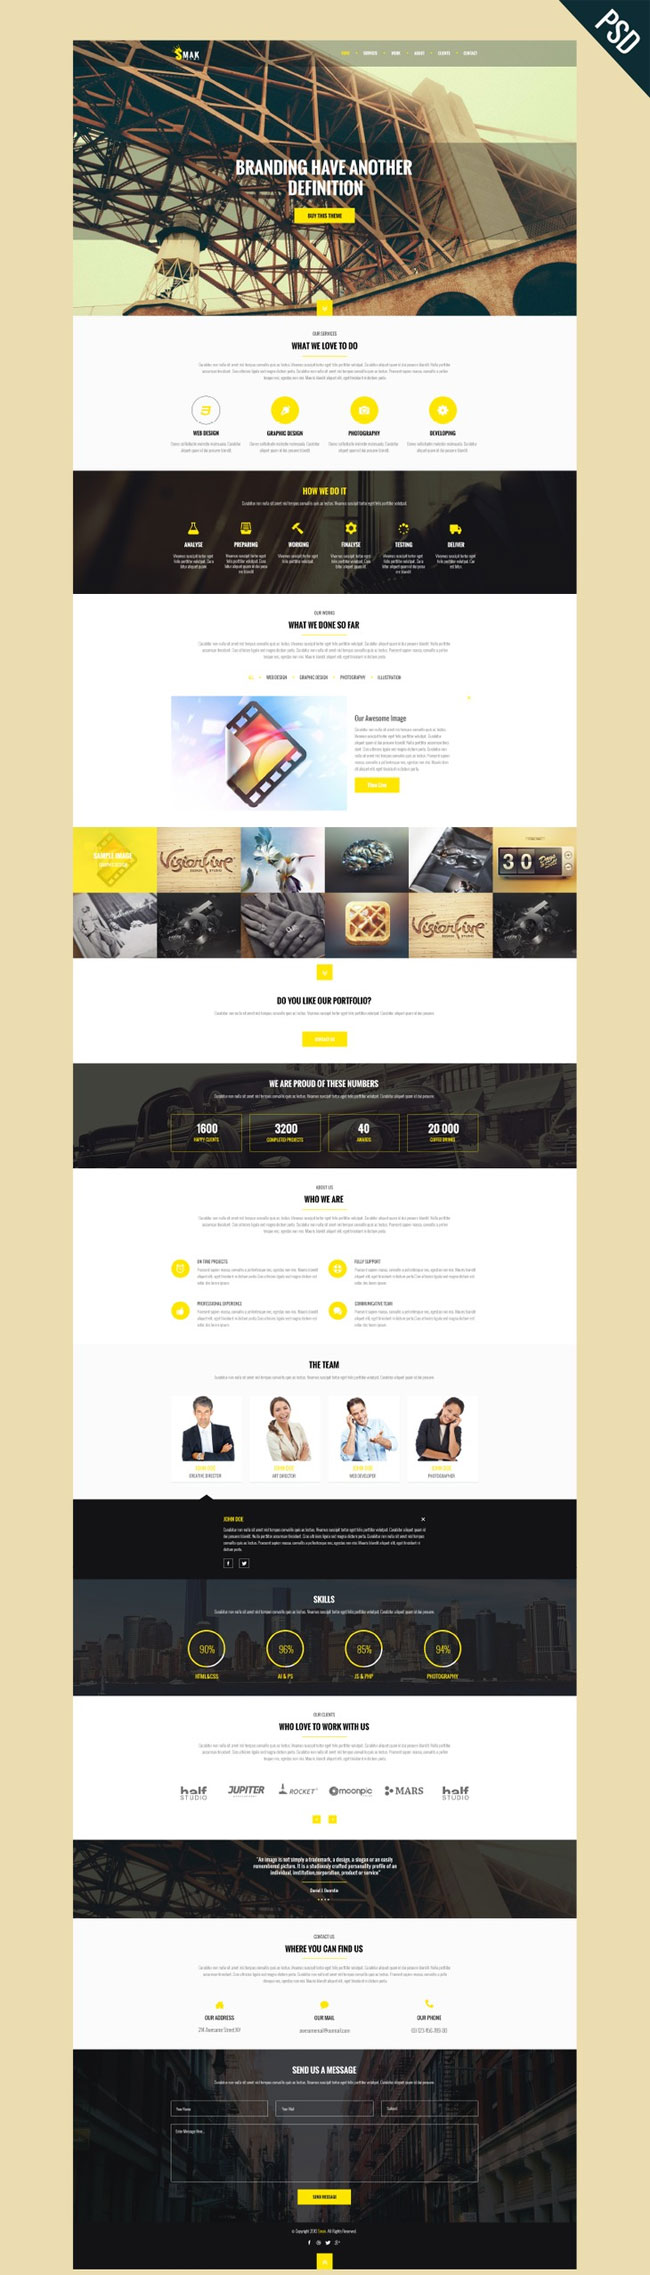 Smak - Free Modern One Page PSD Template